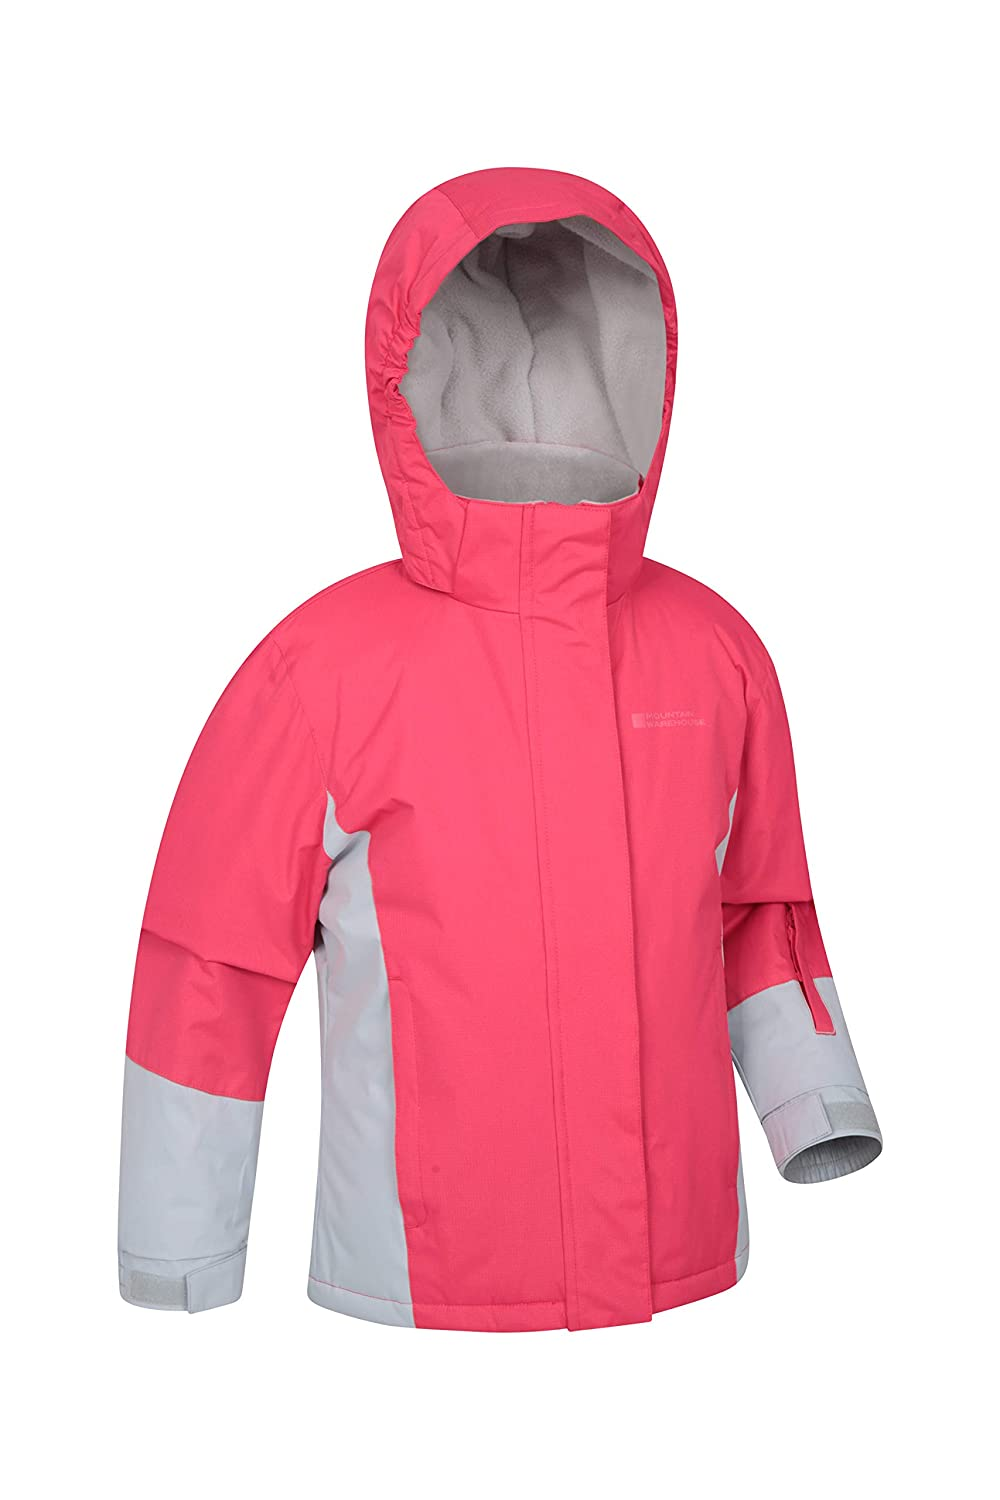 Mountain Warehouse Honey Kids Ski Jacket Boys /& Girls Winter Coat